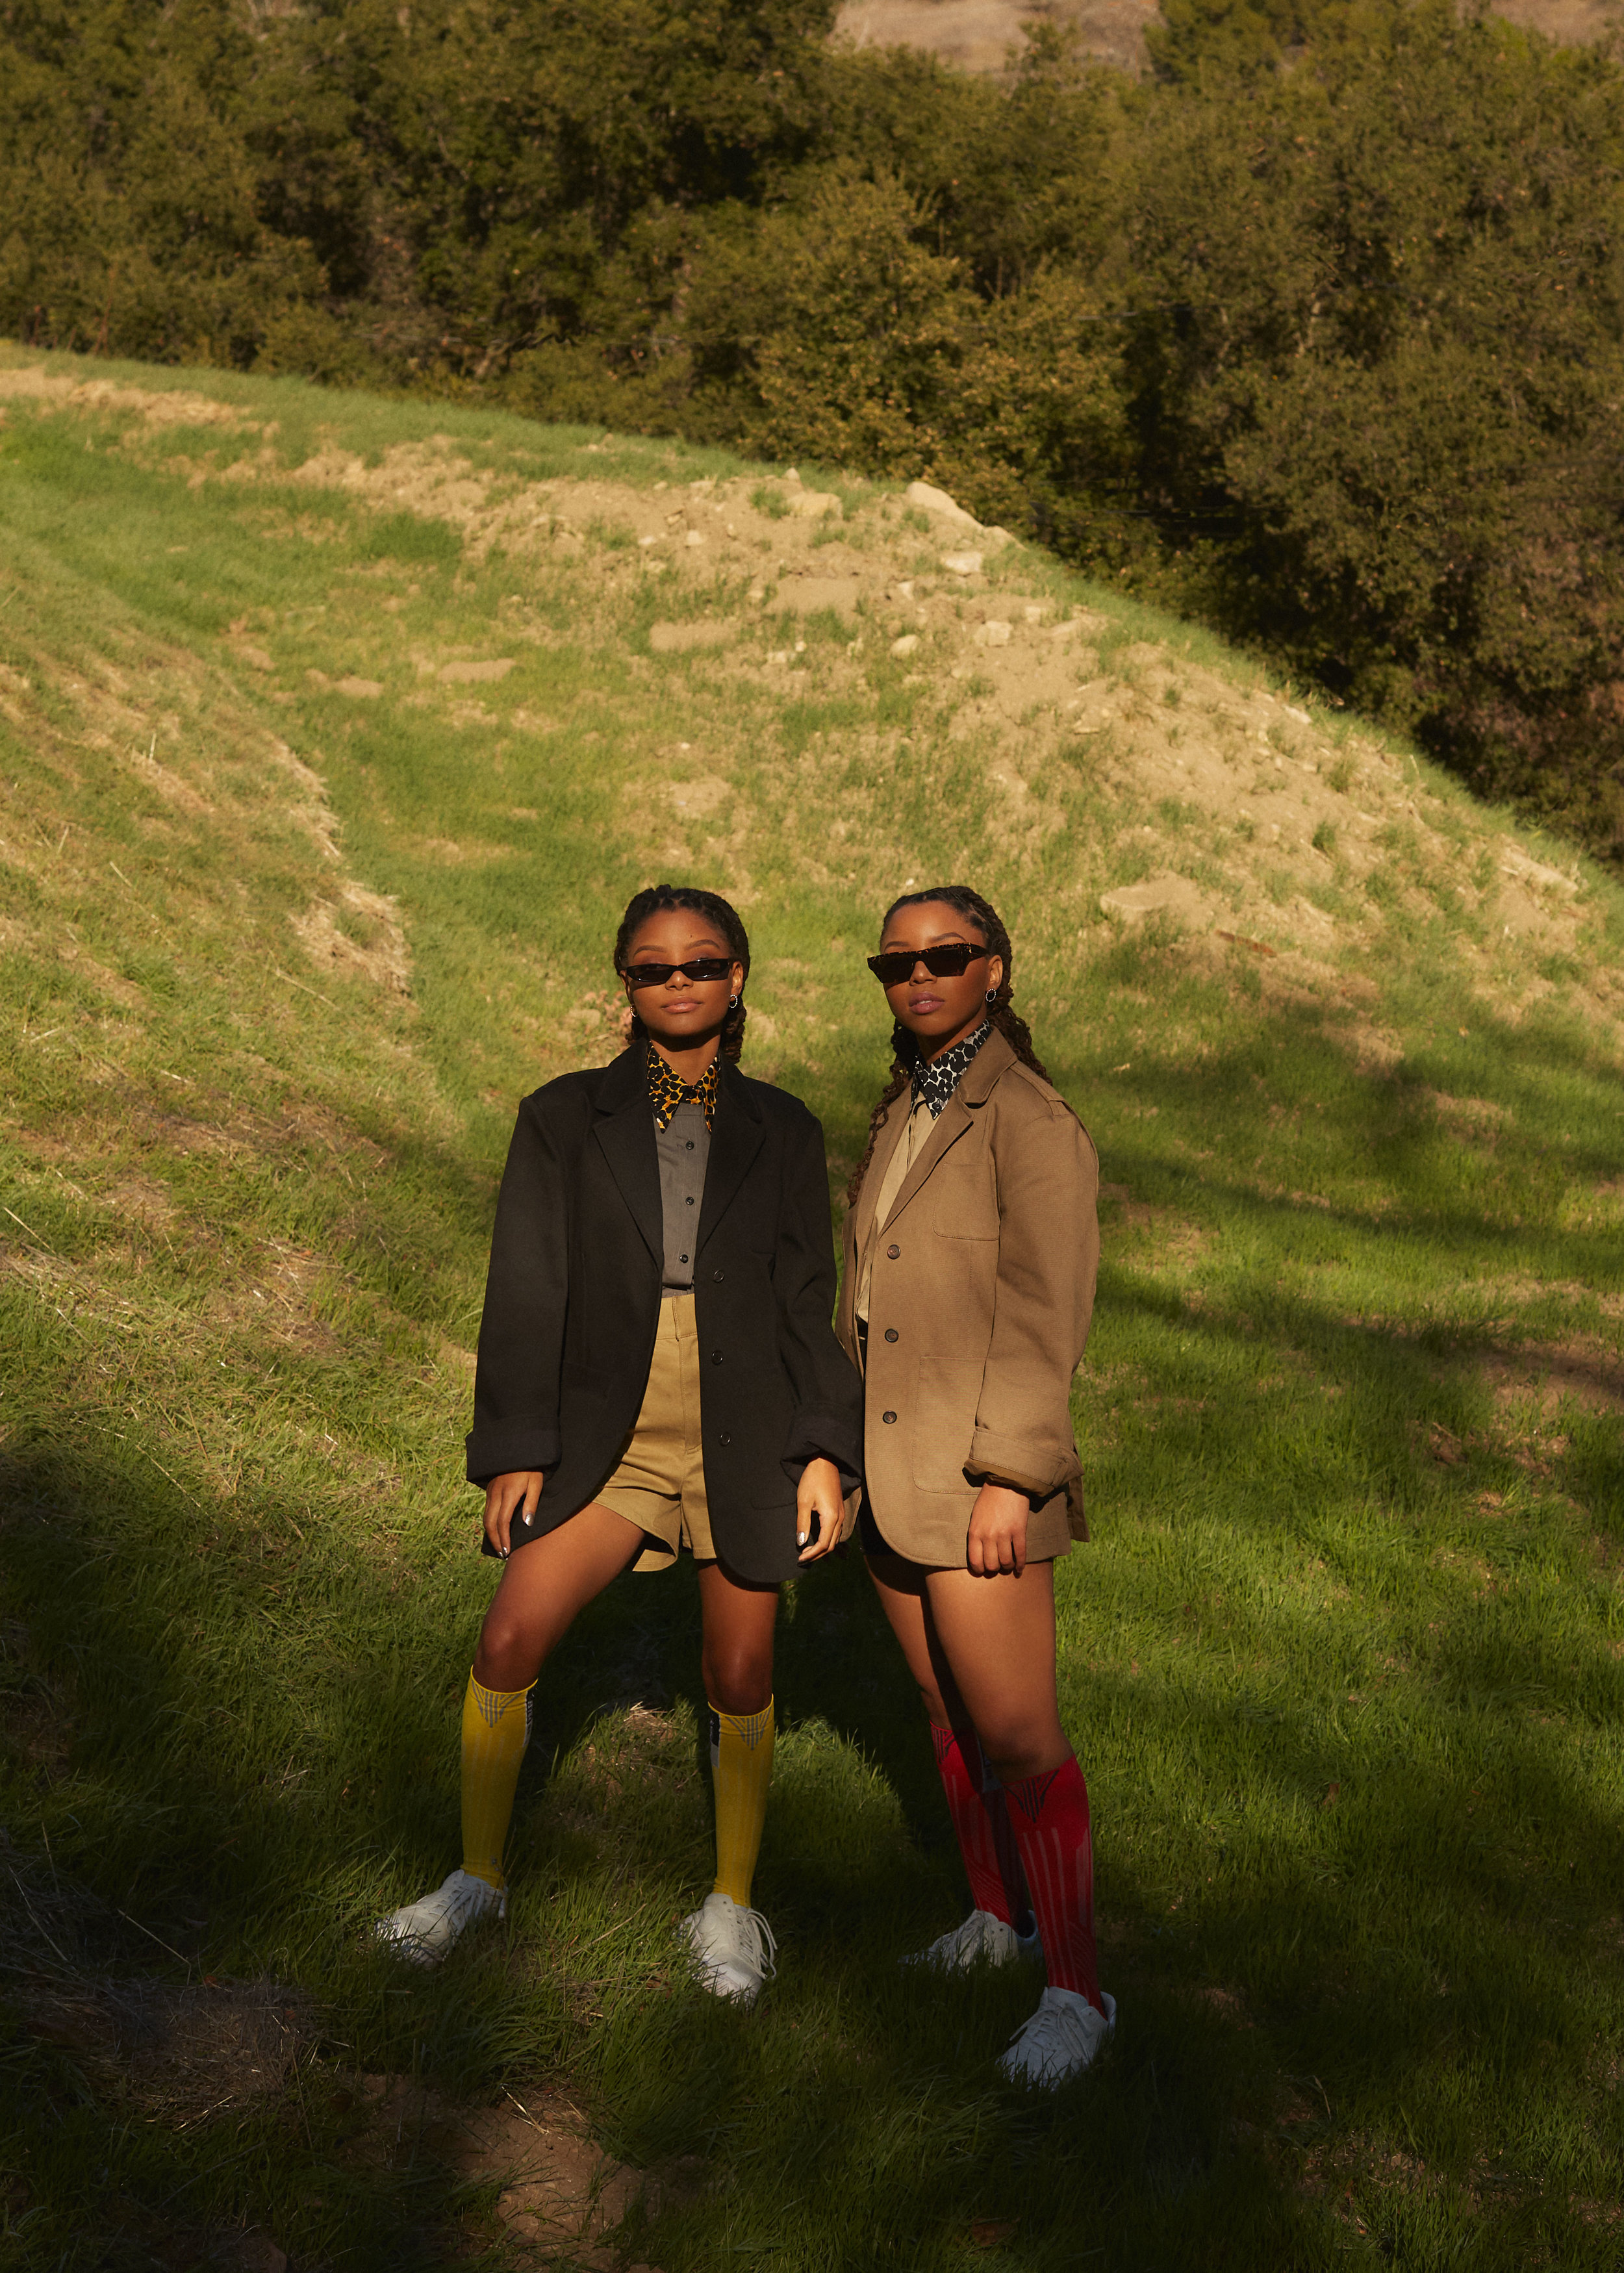 Chloe x Halle  | Photos by Robin Harper | Fashion Credits - Left to right: PRADA jacket, shirt, shorts, and socks, NIKE 1 REIMAGINED jester sneakers, ROBERI & FRAUD sunglasses, and GABRIELA ARTIGAS earrings. PRADA jacket, shirt, shorts, and socks, NIKE 1 REIMAGINED Jester sneakers, CUTLER & GROSS sunglasses, and GABRIELA ARTIGAS earrings